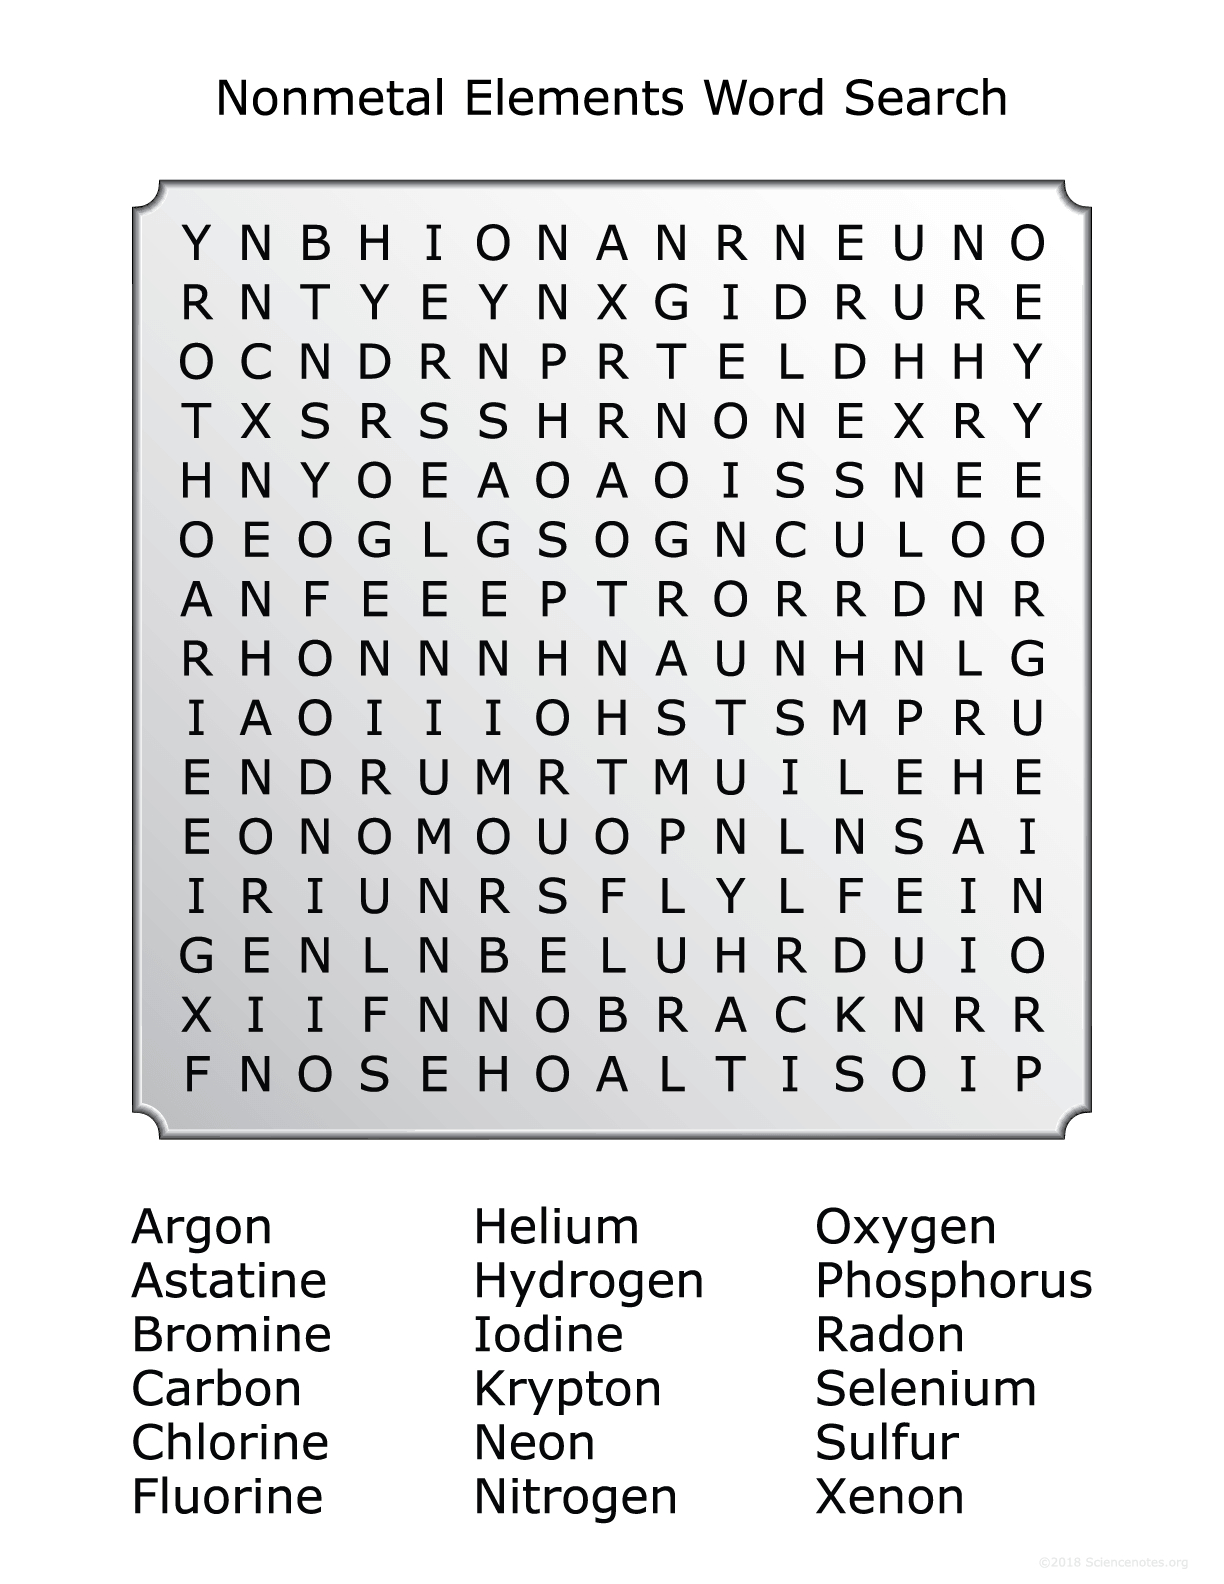 Nonmetals Word Search Puzzle